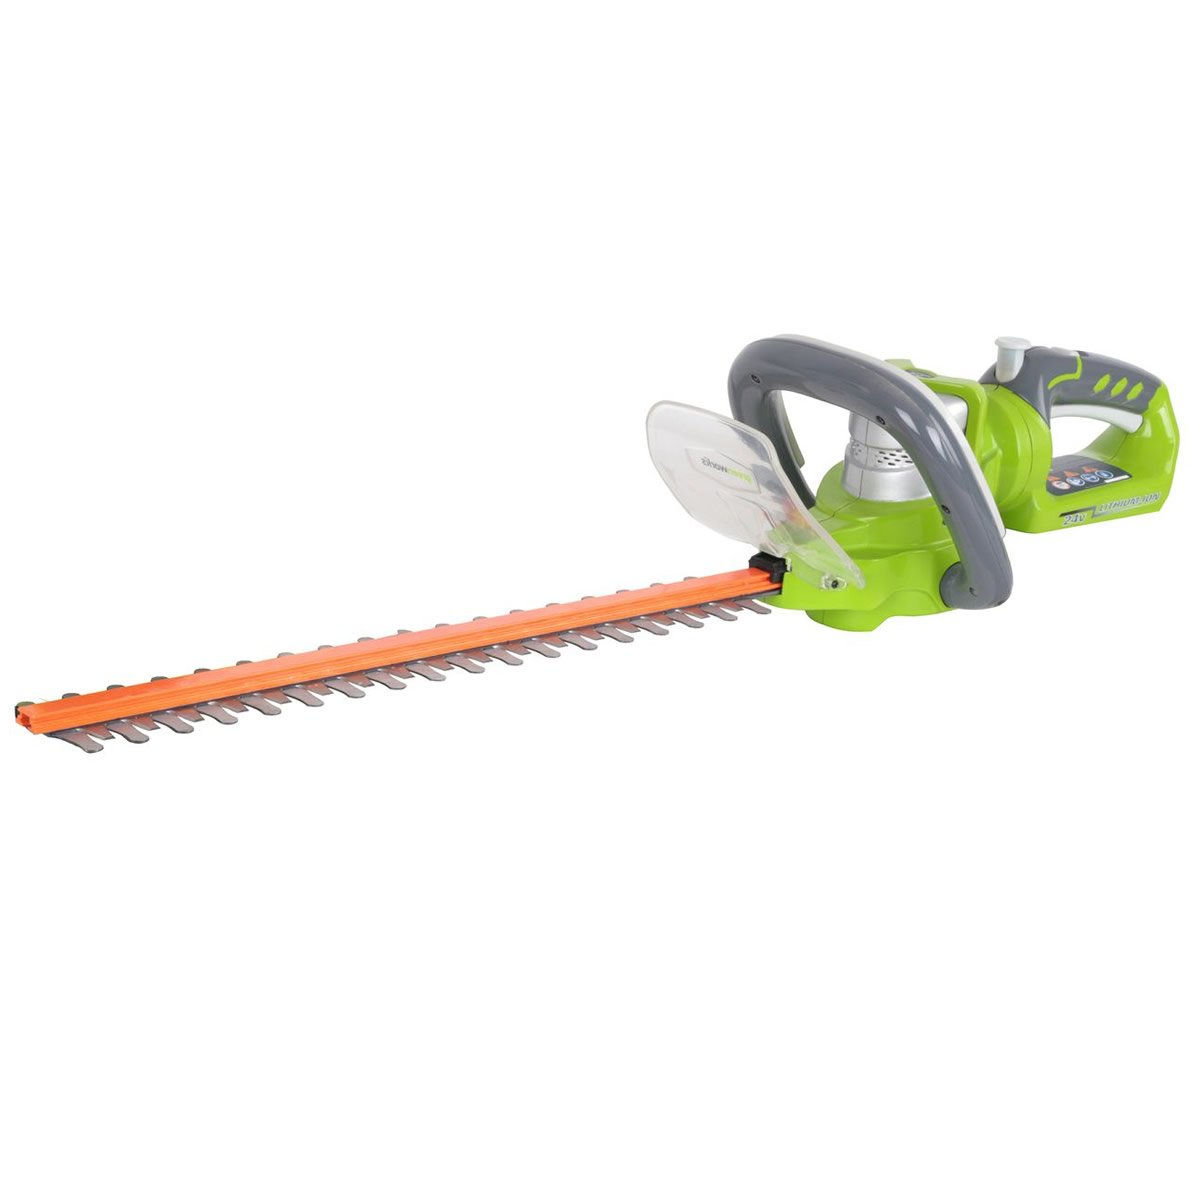 Greenworks 24v Deluxe Cordless Hedge Trimmer with Twist Handle (2200107-A)